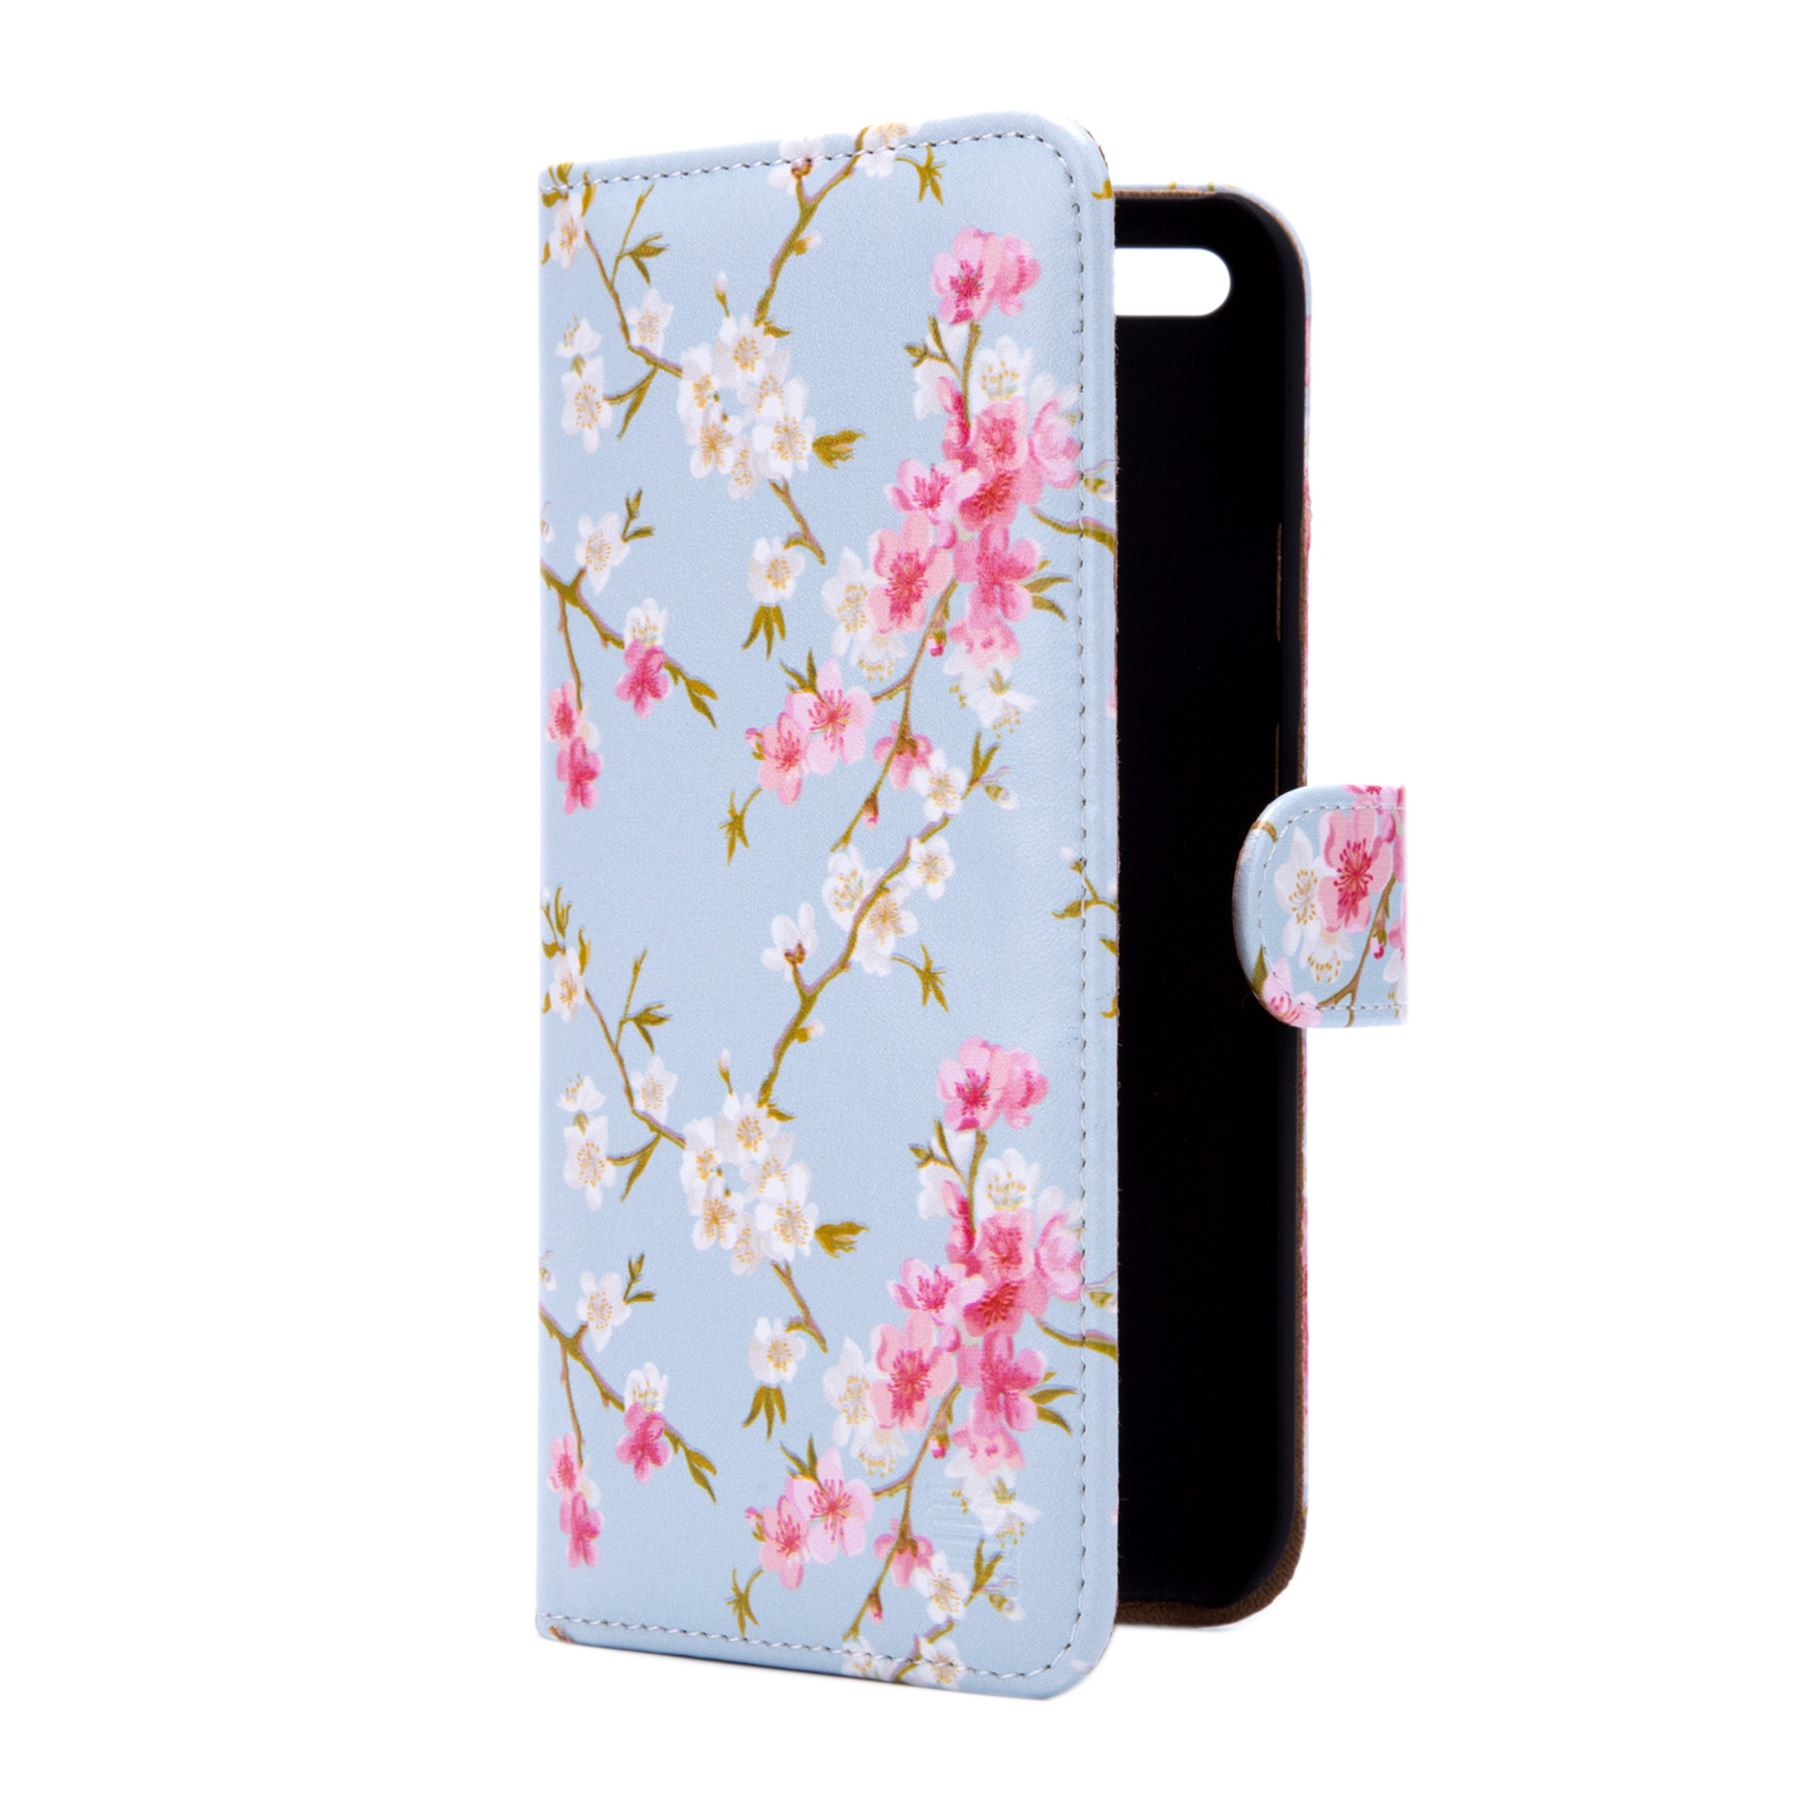 PU-Leather-Floral-Design-Book-Wallet-Case-Cover-For-Google-Pixel thumbnail 34